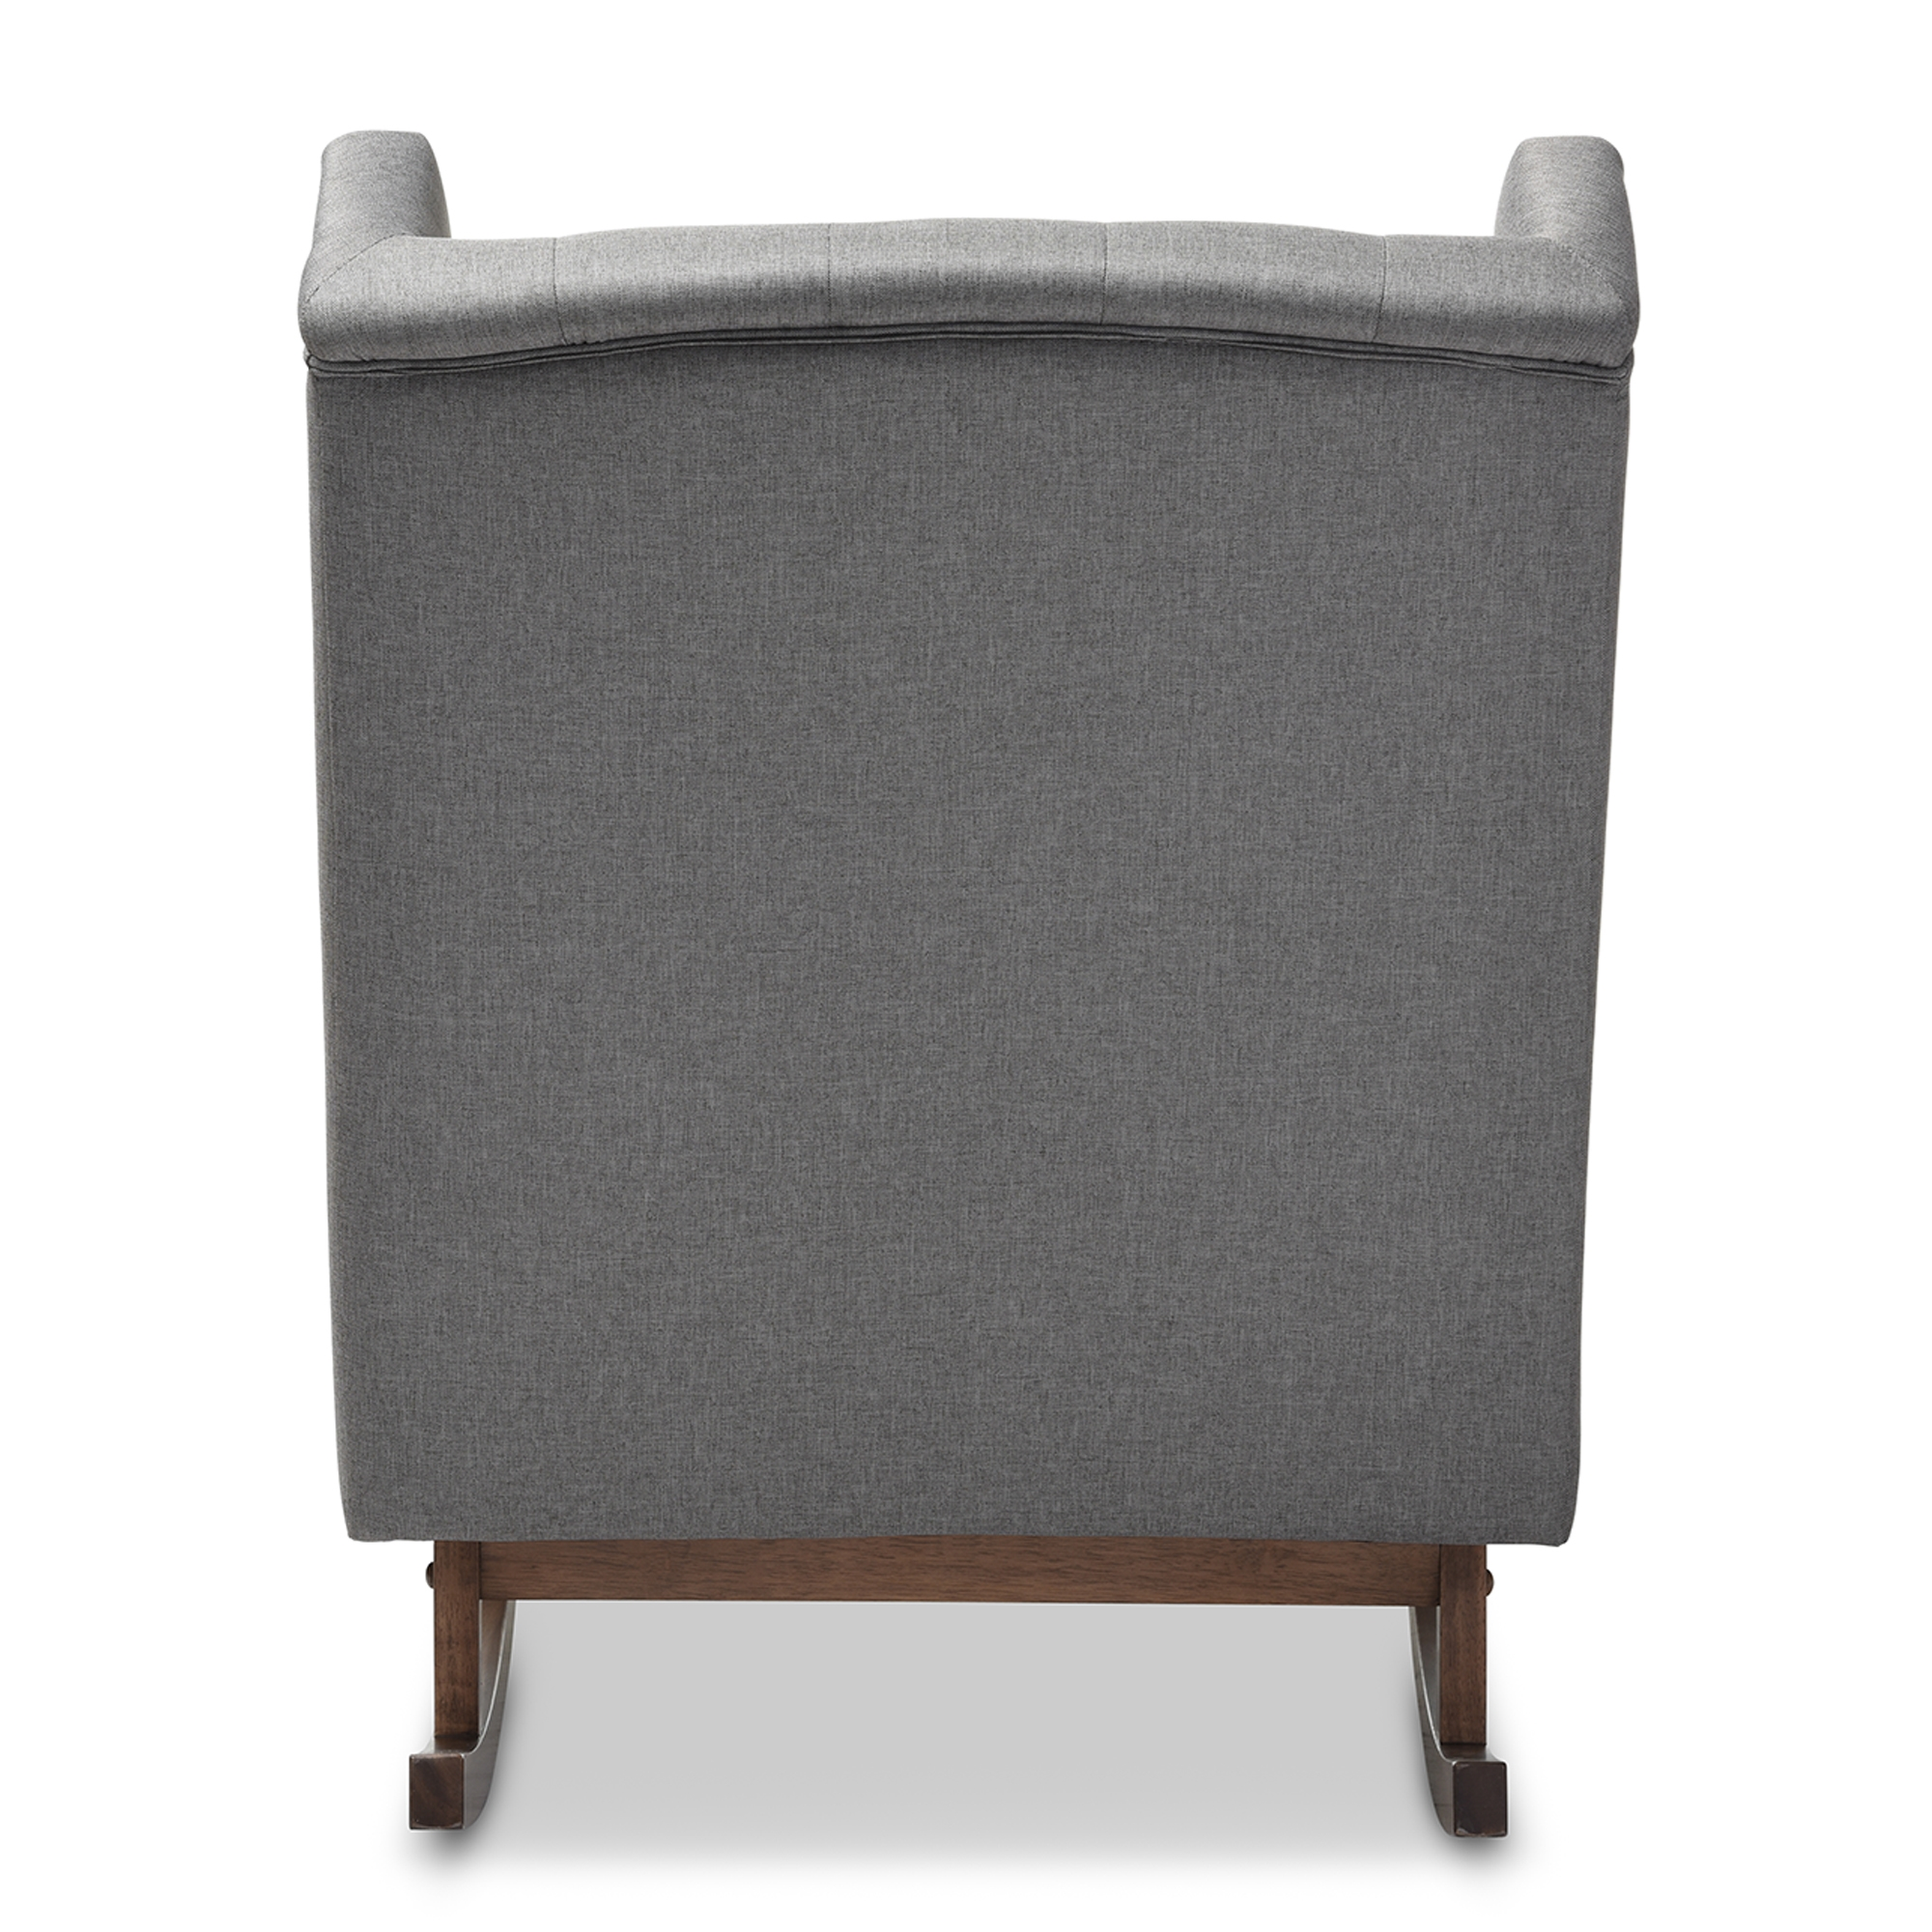 ... Baxton Studio Iona Mid Century Retro Modern Grey Fabric Upholstered  Button Tufted Wingback Rocking ...